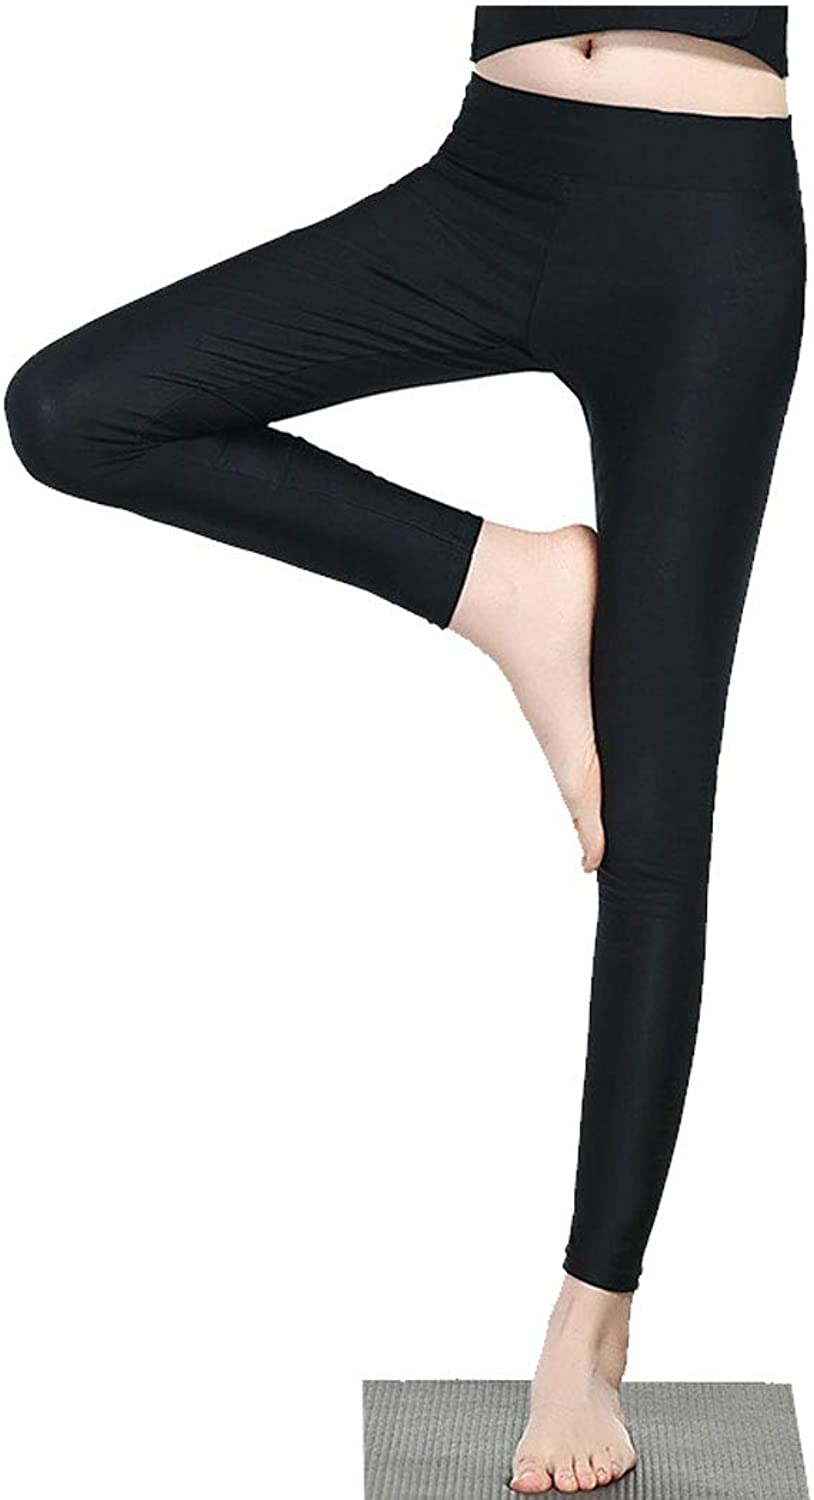 YONGYONG New Explosion Sweat Pants Female Large Size Legs Fitness Pants Sports Running High Waist Slim Sweating Yoga Pants (color   Black, Size   M)